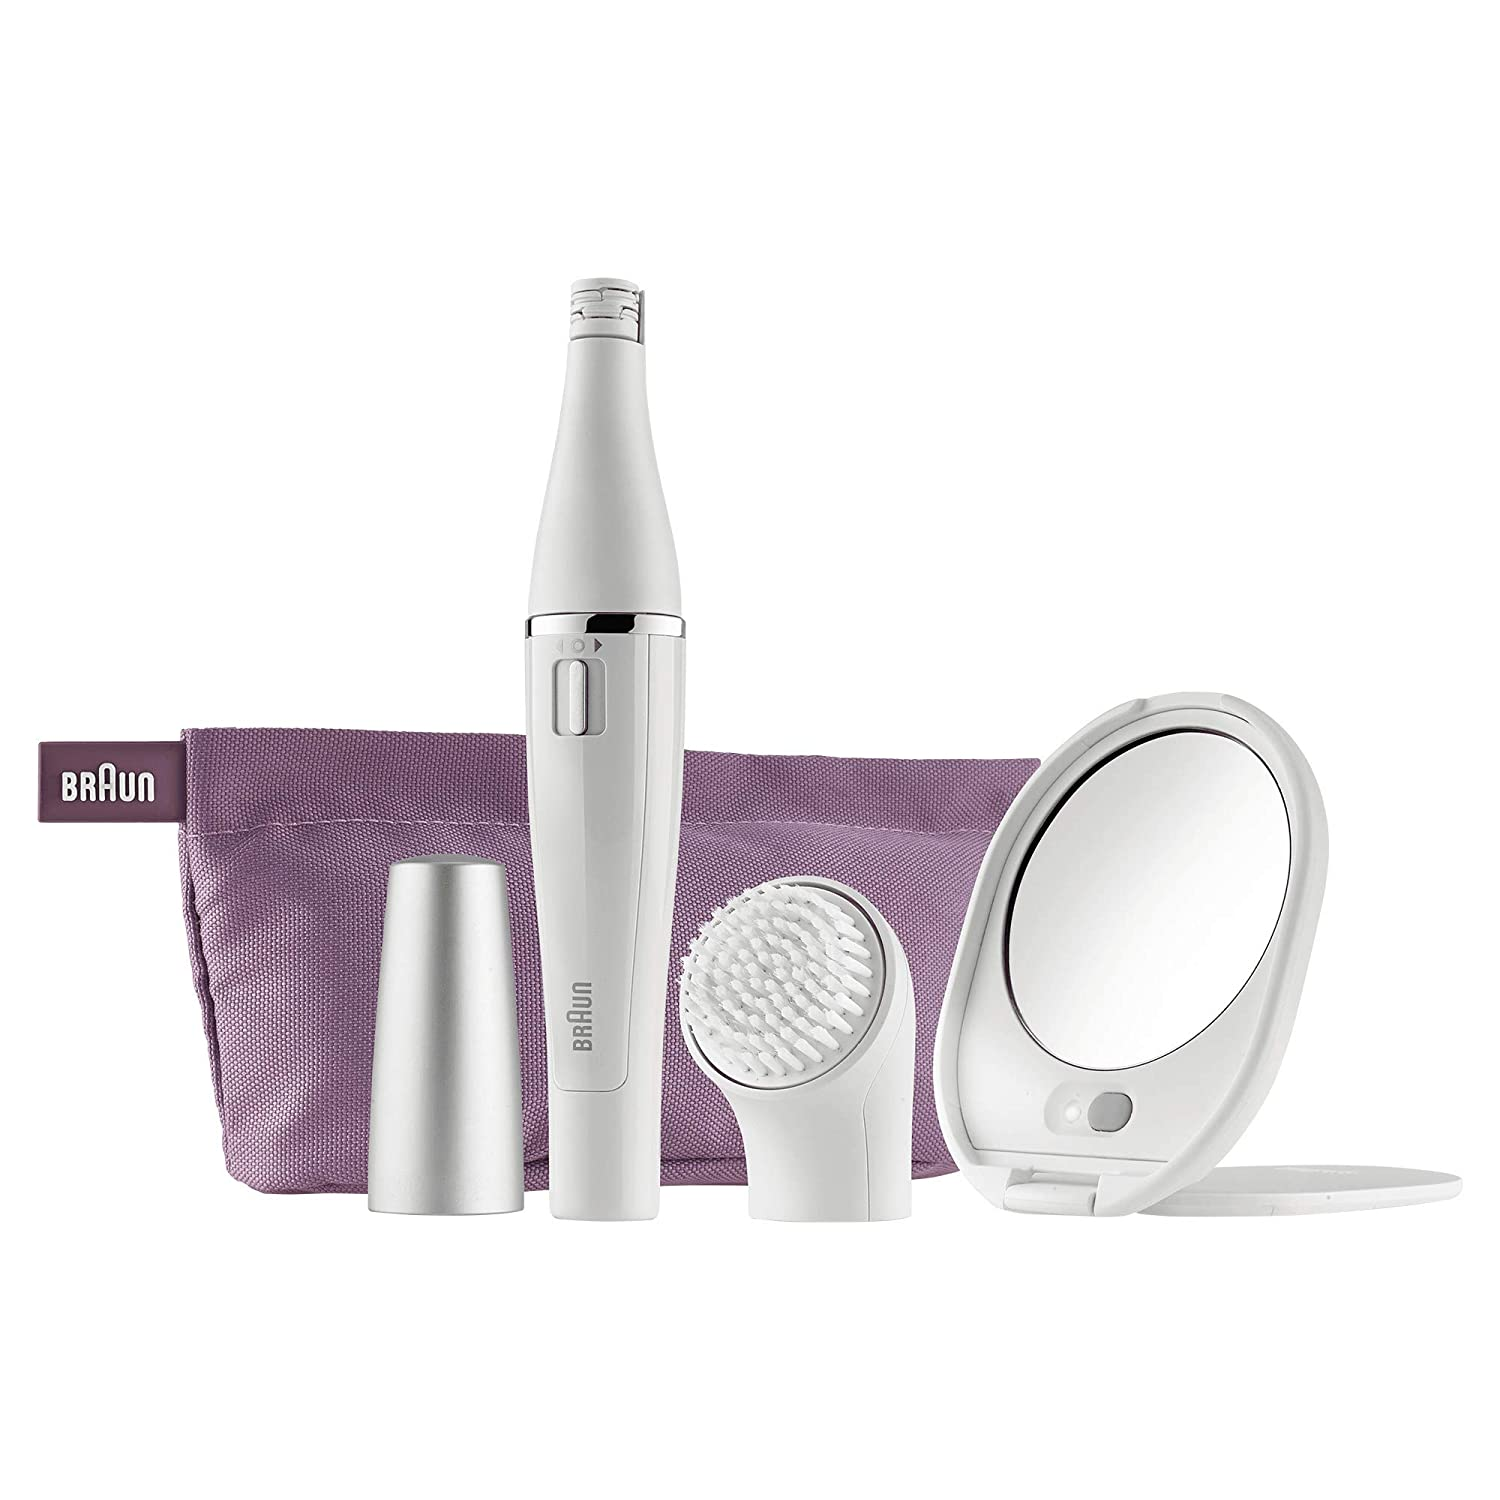 Braun FaceSpa Premium Edition SE830 Face Epilator with Facial Cleansing Brush and Lighted Mirror